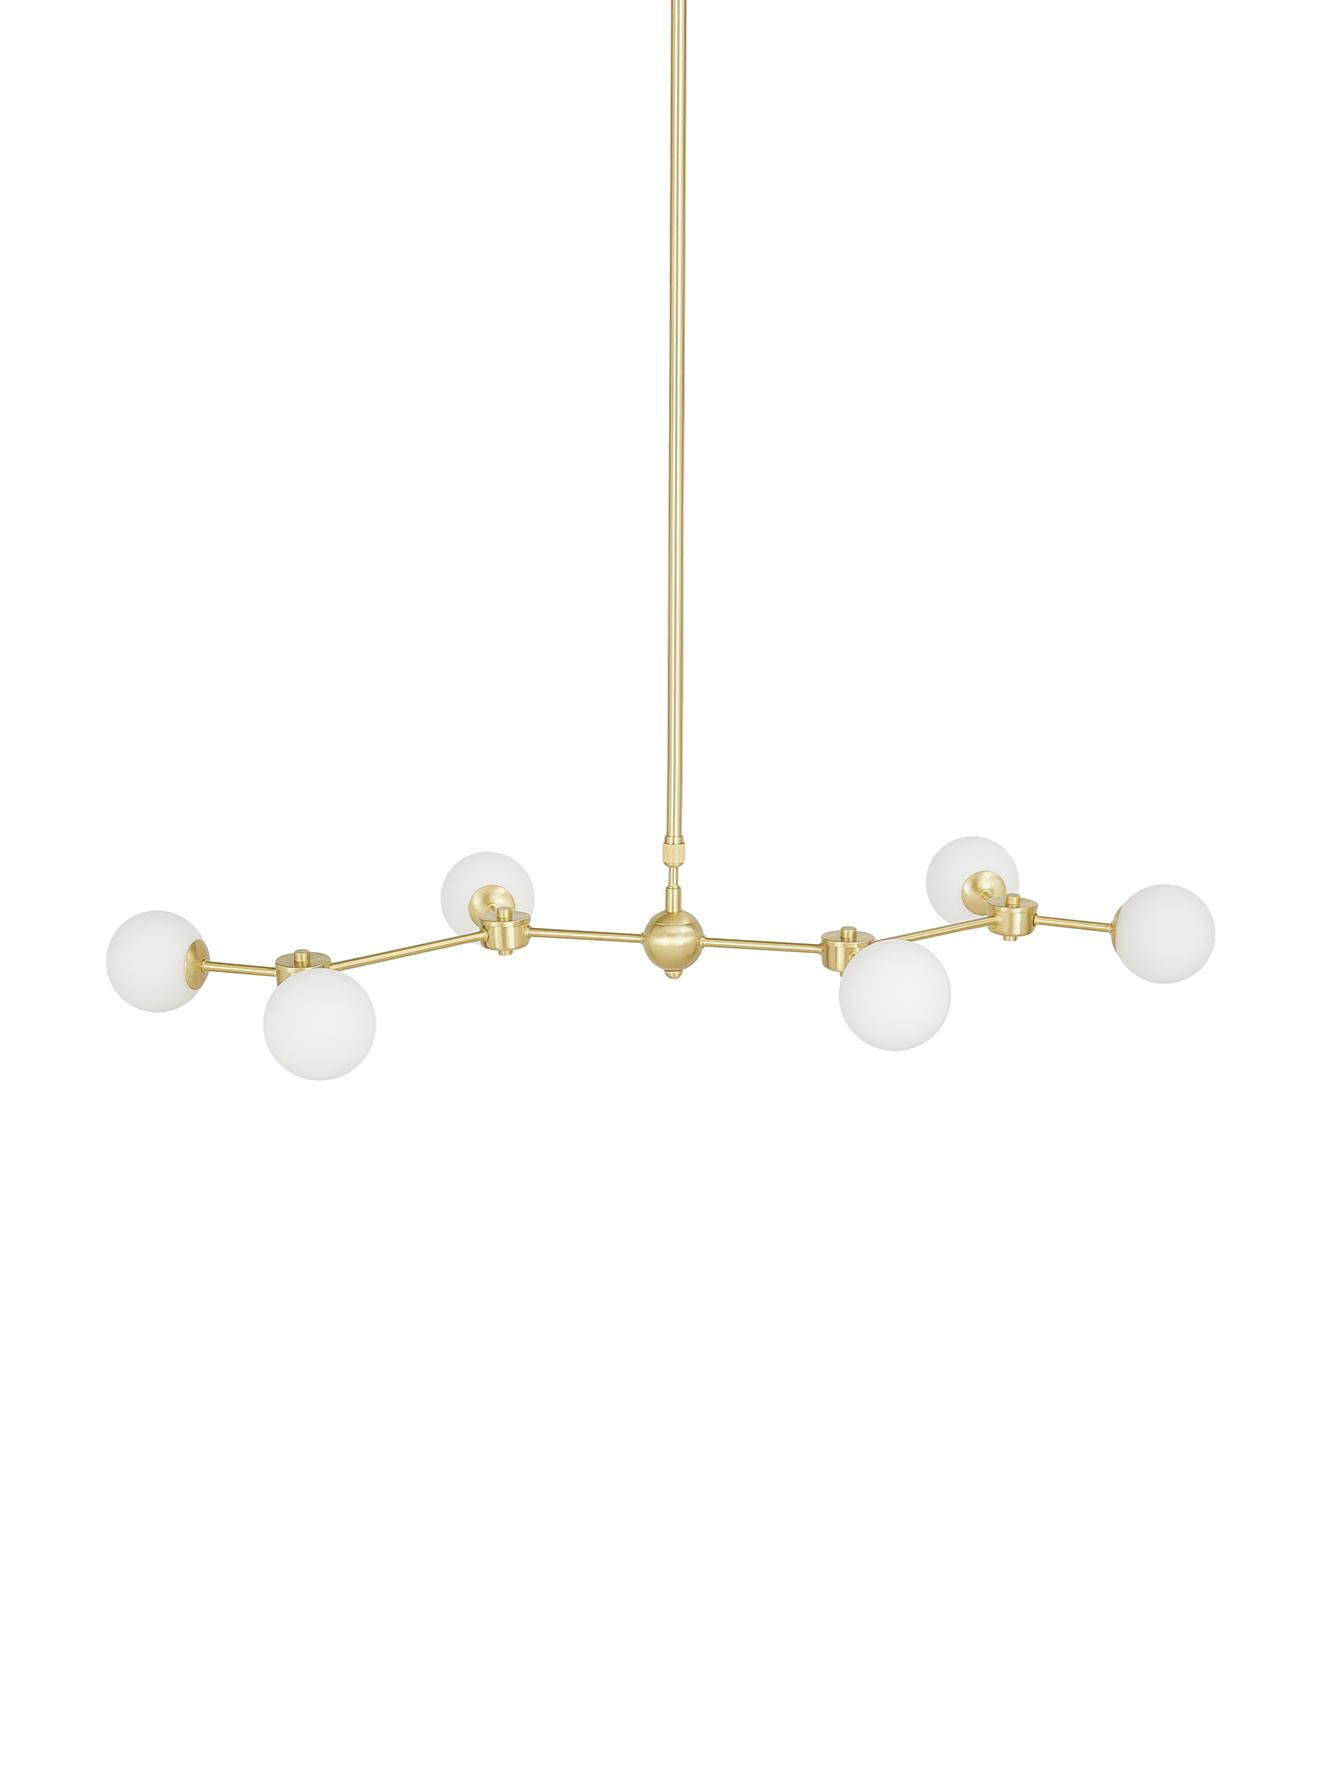 Grosse Pendelleuchte Aurelia in Gold, Weiss, Messing, 110 x 68 cm